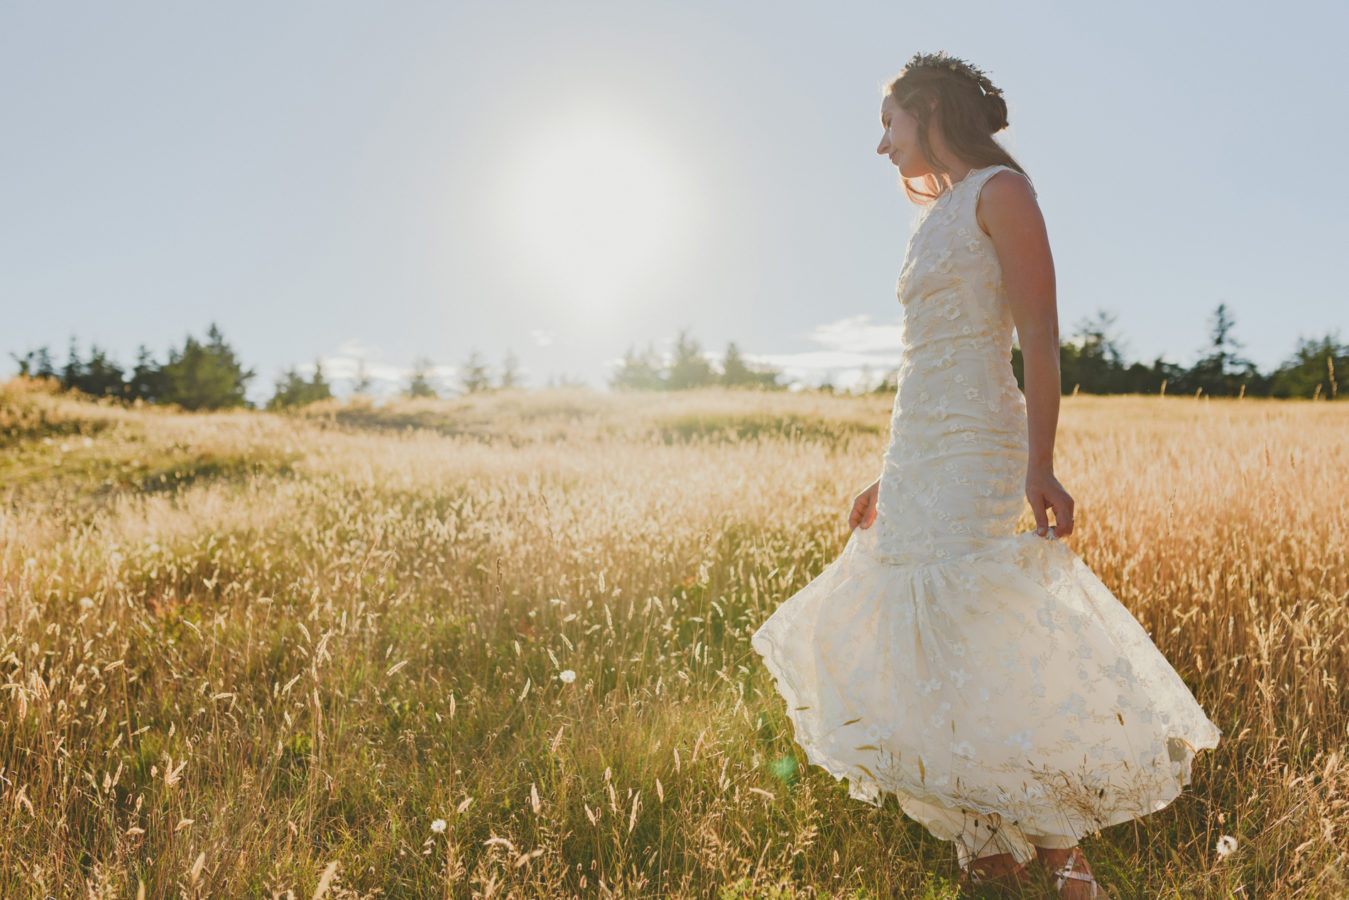 bride spinning in her wedding dress in a grassy field with the sunshine behind her